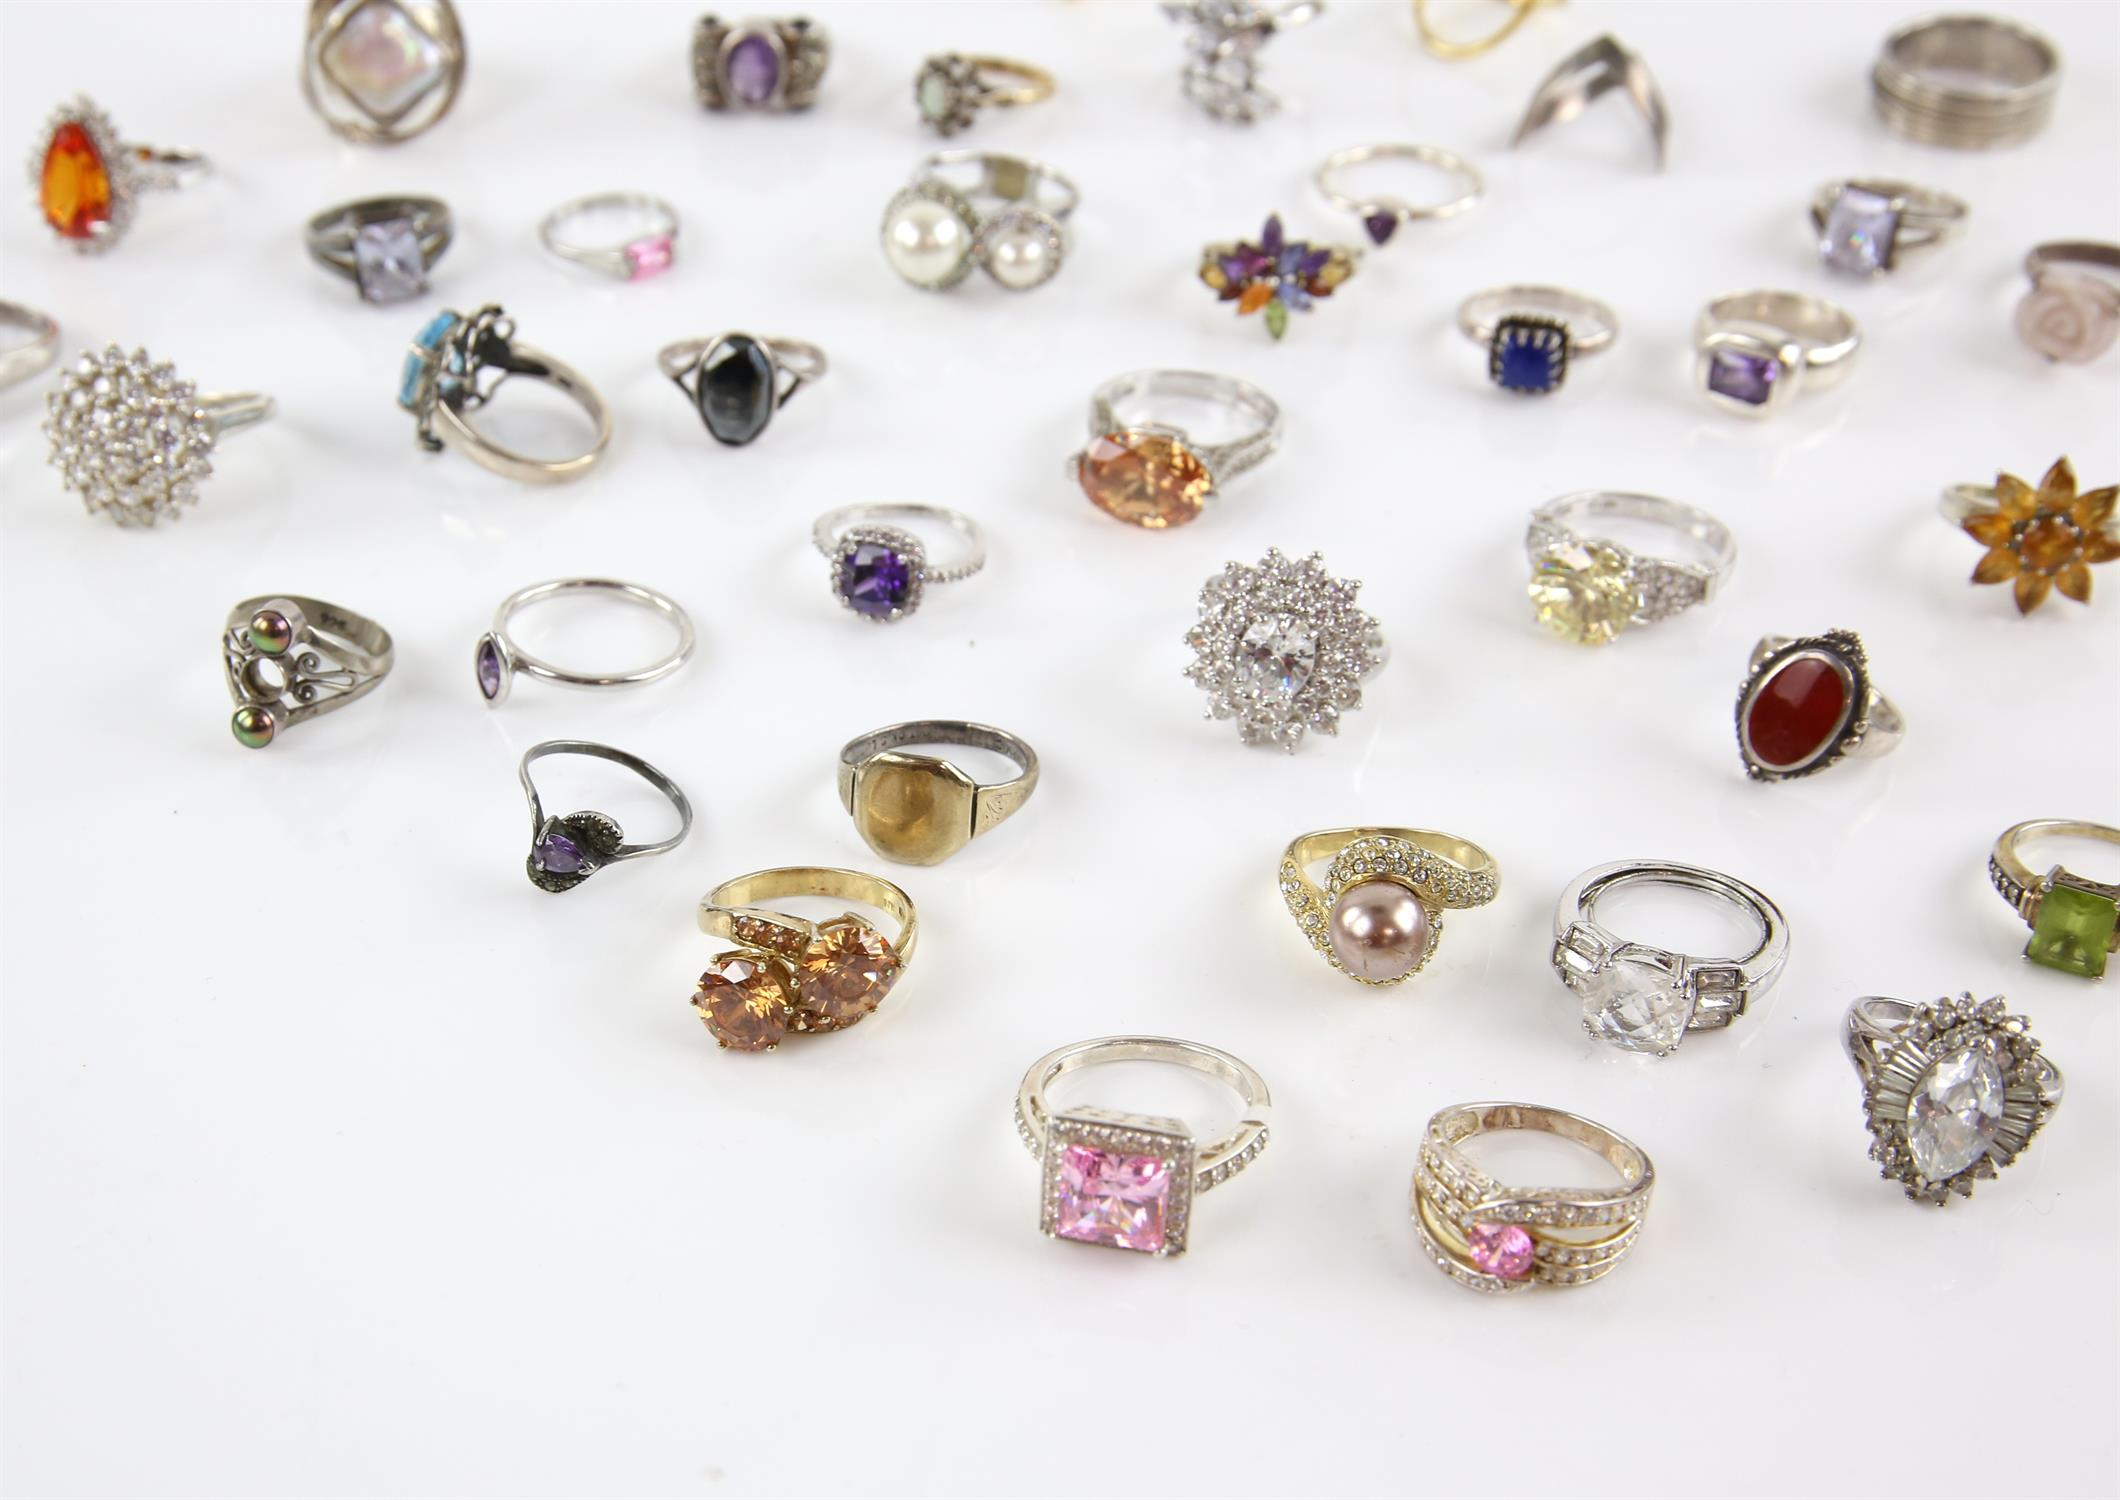 Selection of rings, forty in total, one signet ring size Q, pink princess cut paste ring, size U, - Image 3 of 3